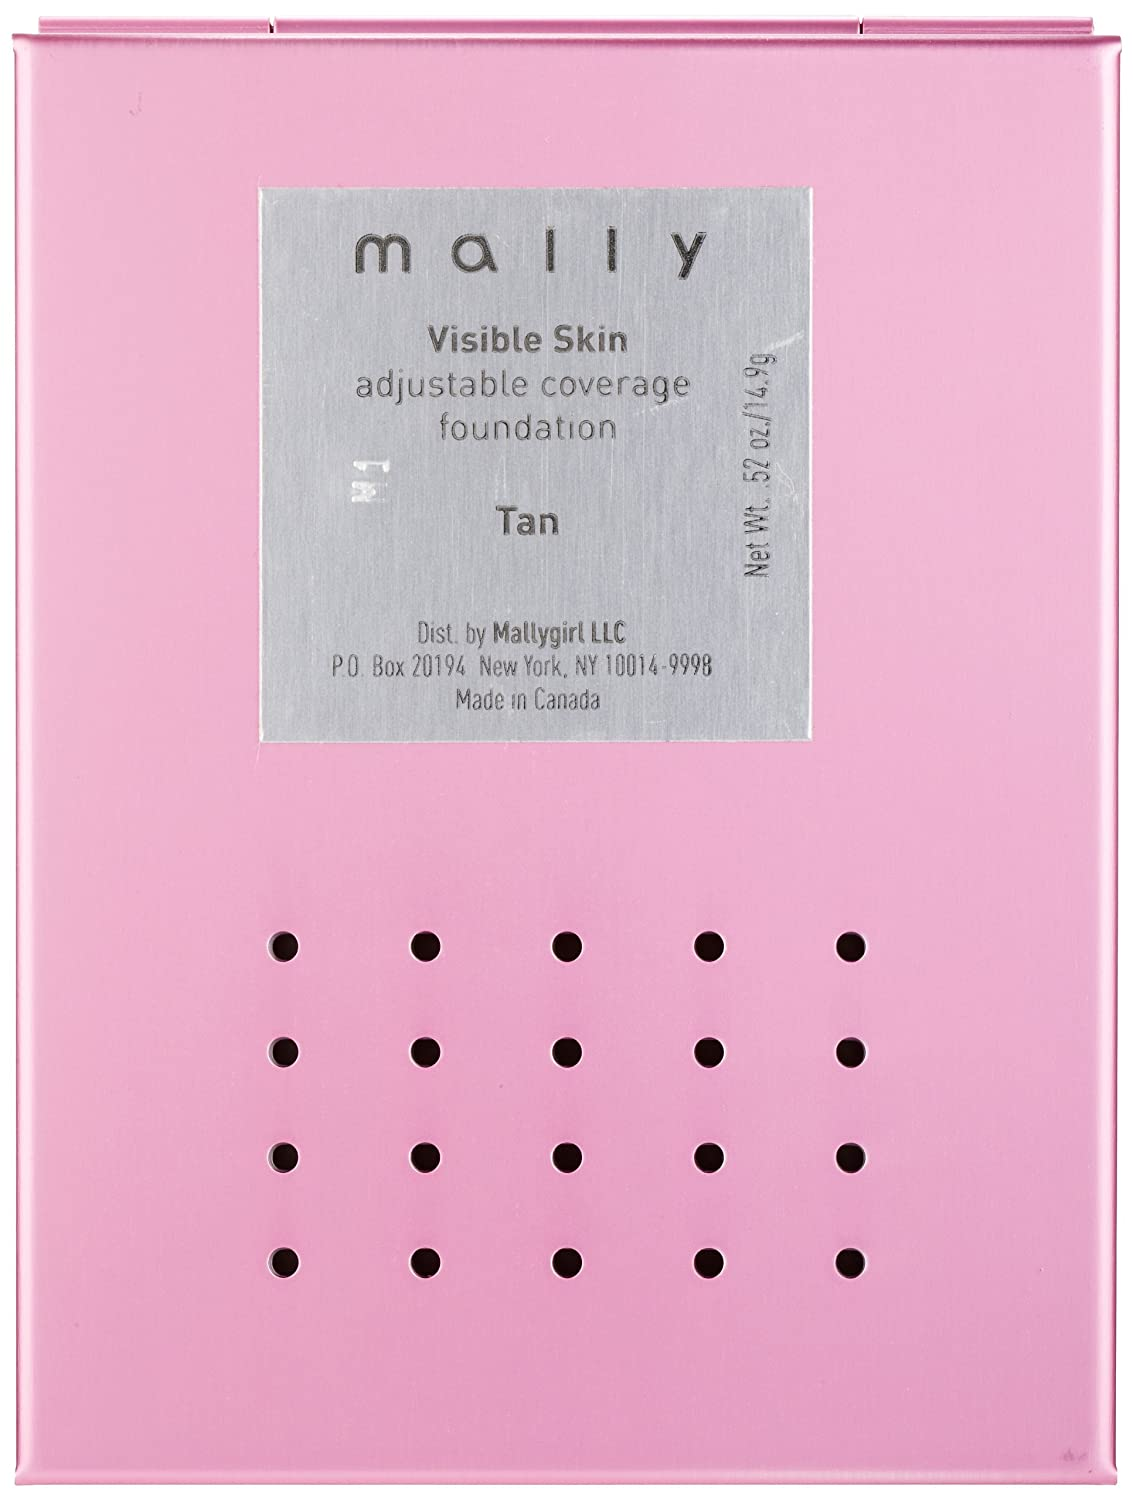 Visible Skin Adjustable by mally #5